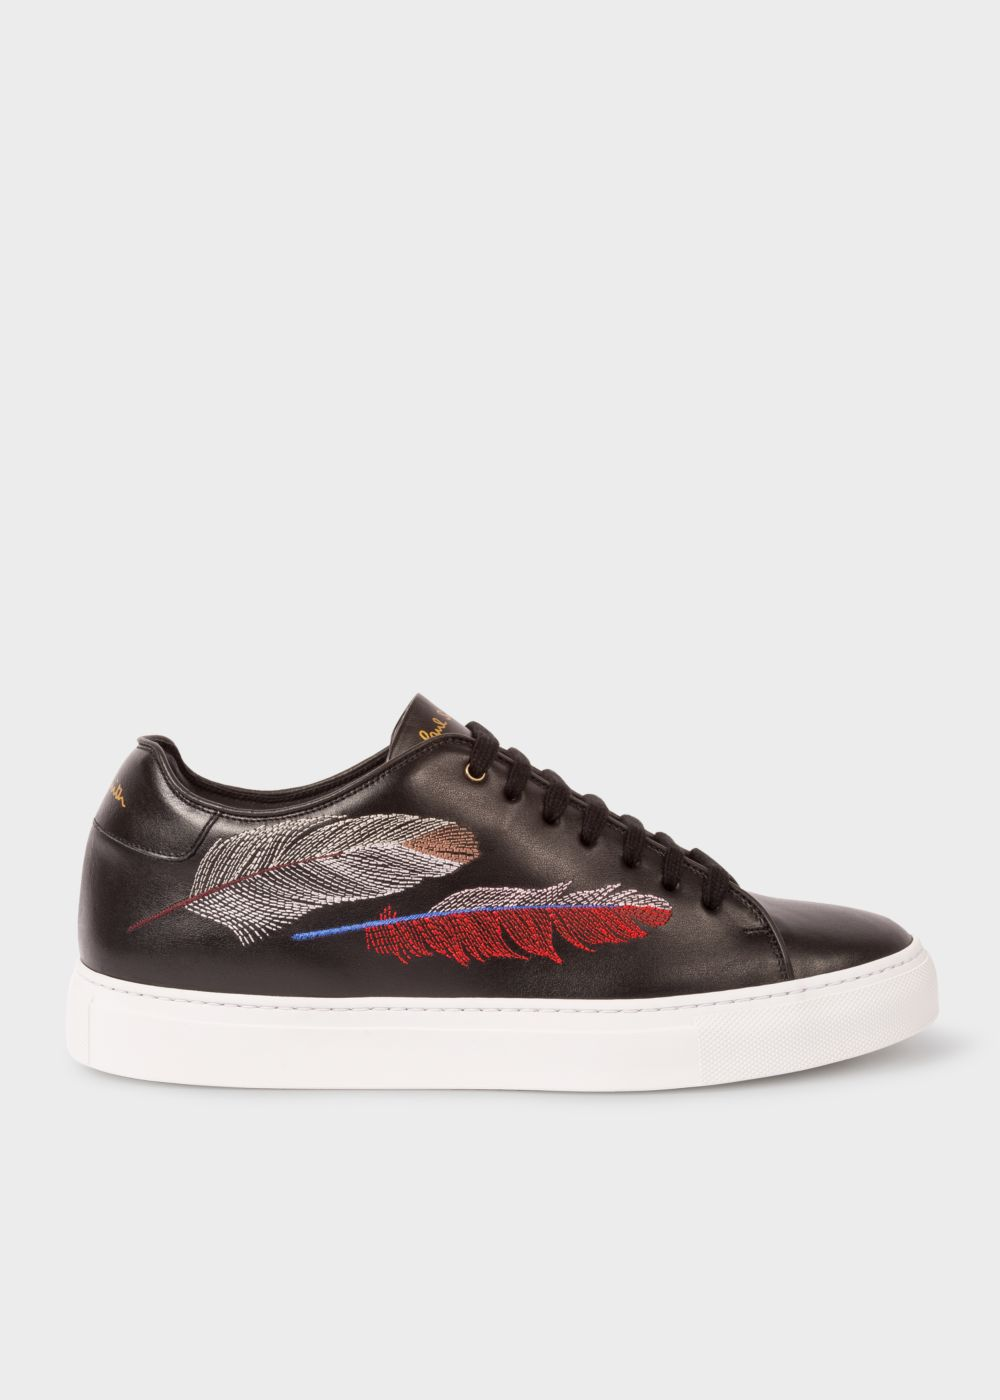 Paul Smith Men's Black Leather 'Basso' Trainers With Feather Embroidery